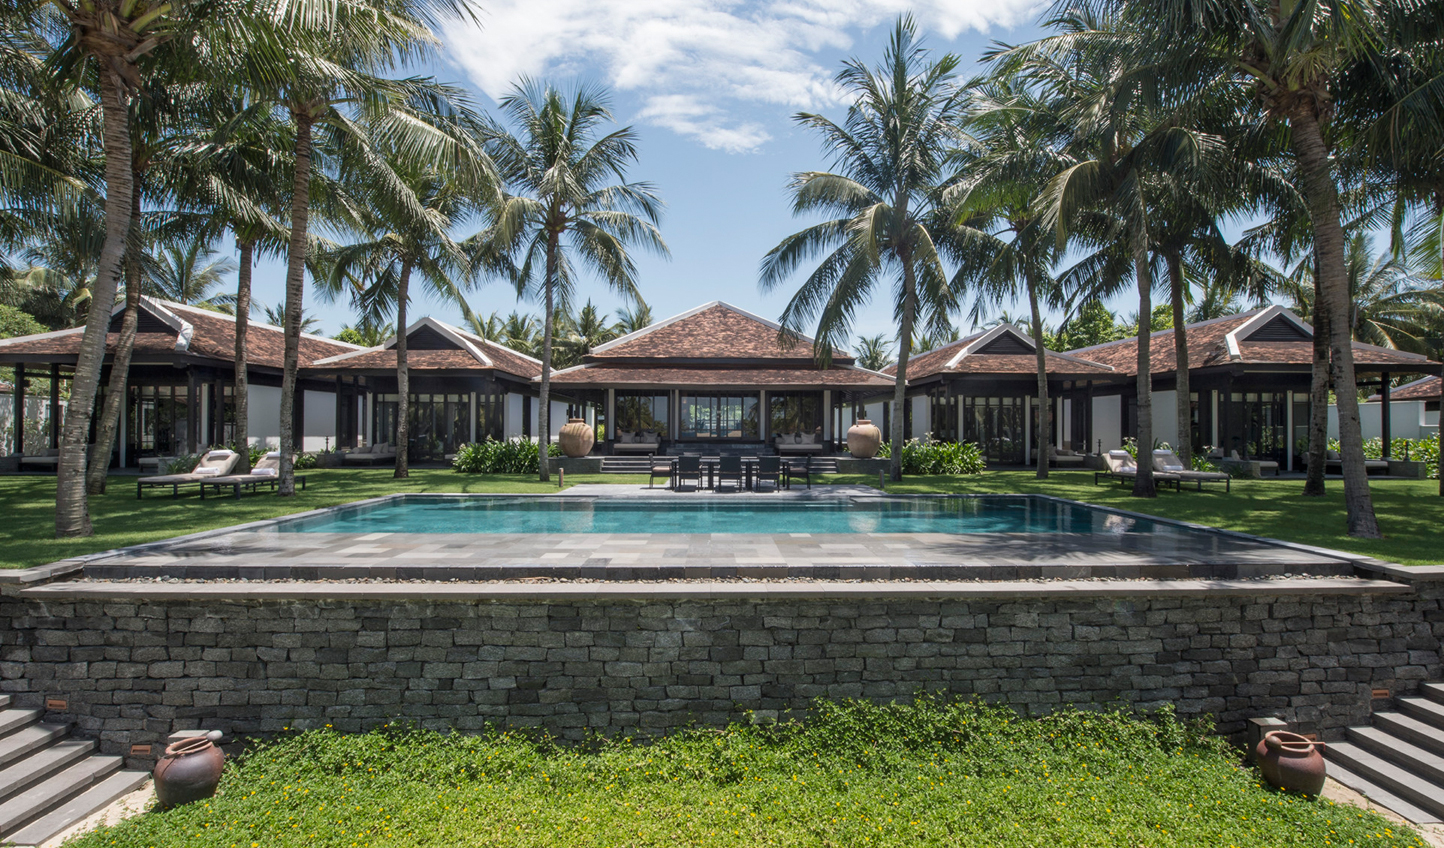 Your luxurious villa awaits